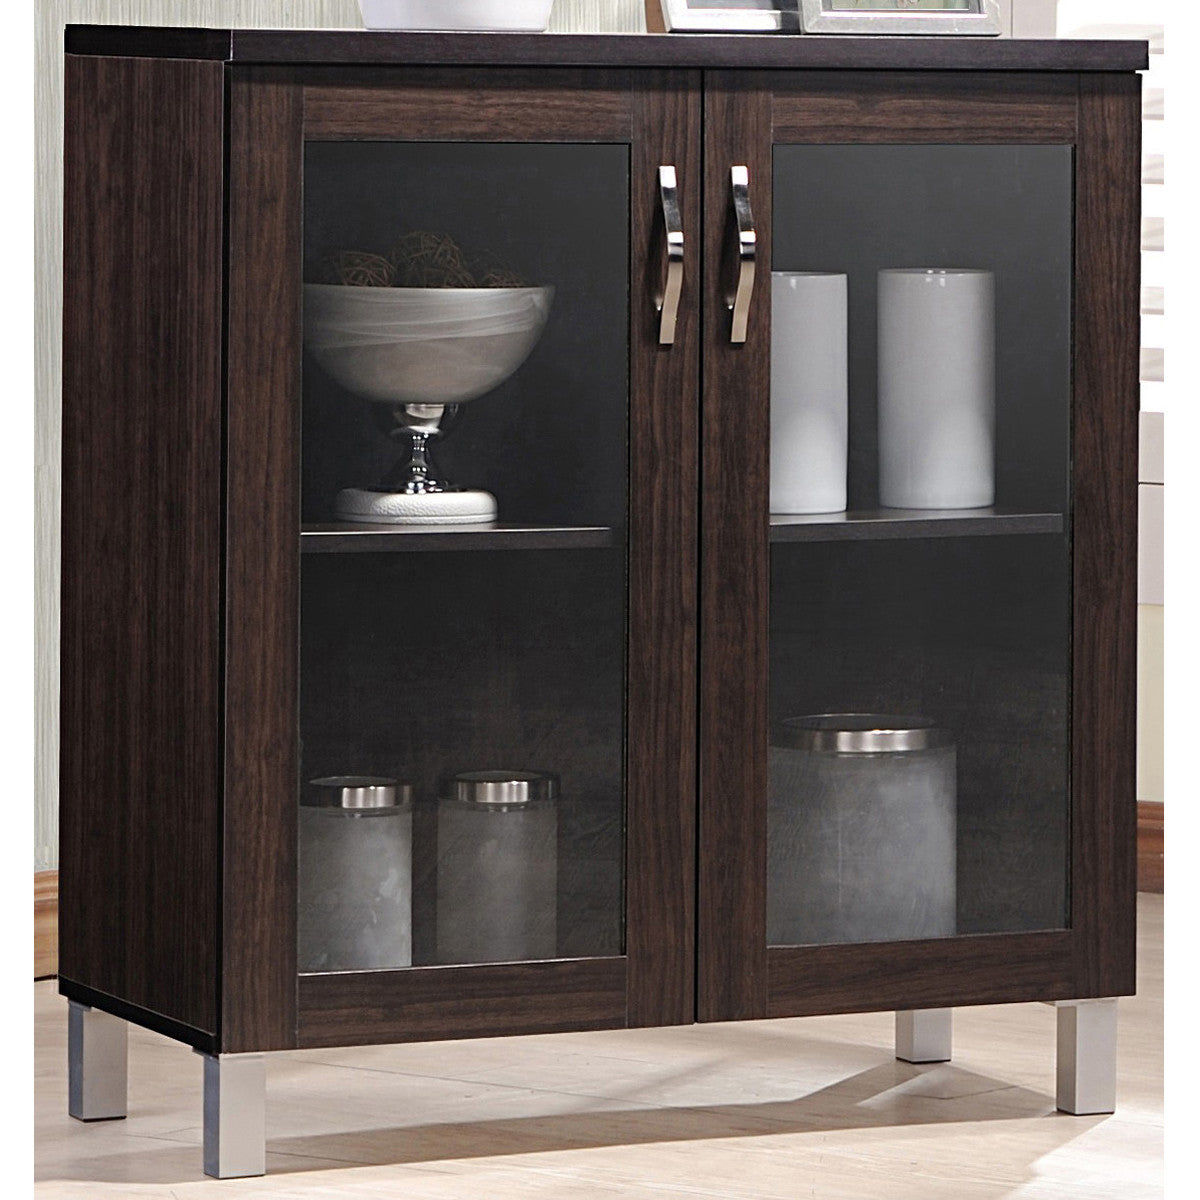 Sintra Modern And Contemporary Dark Brown Sideboard Storage Cabinet With Glass Doors